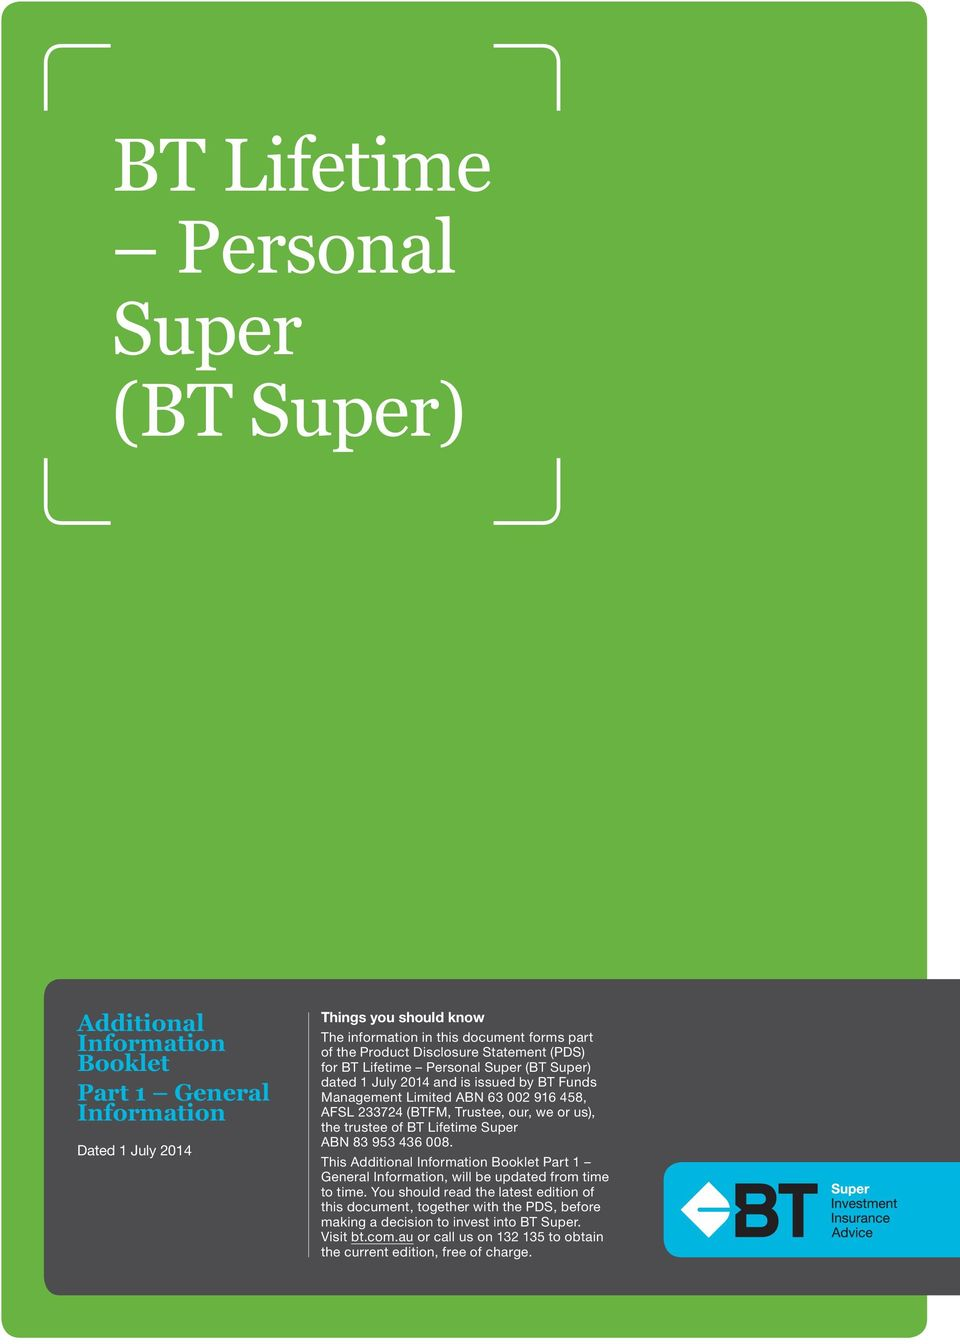 our, we or us), the trustee of BT Lifetime Super ABN 83 953 436 008. This Additional Information Booklet Part 1 General Information, will be updated from time to time.